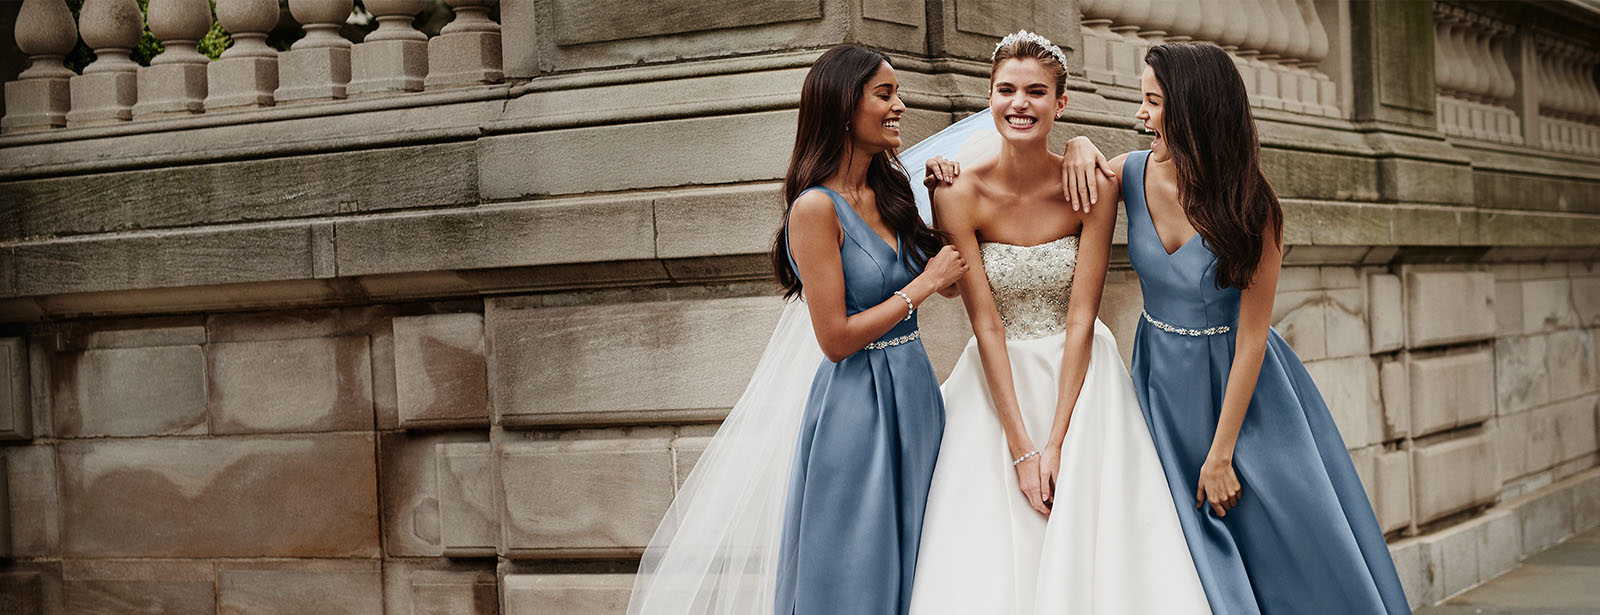 Bride with Bridesmaids next to stone building smiling and laughing